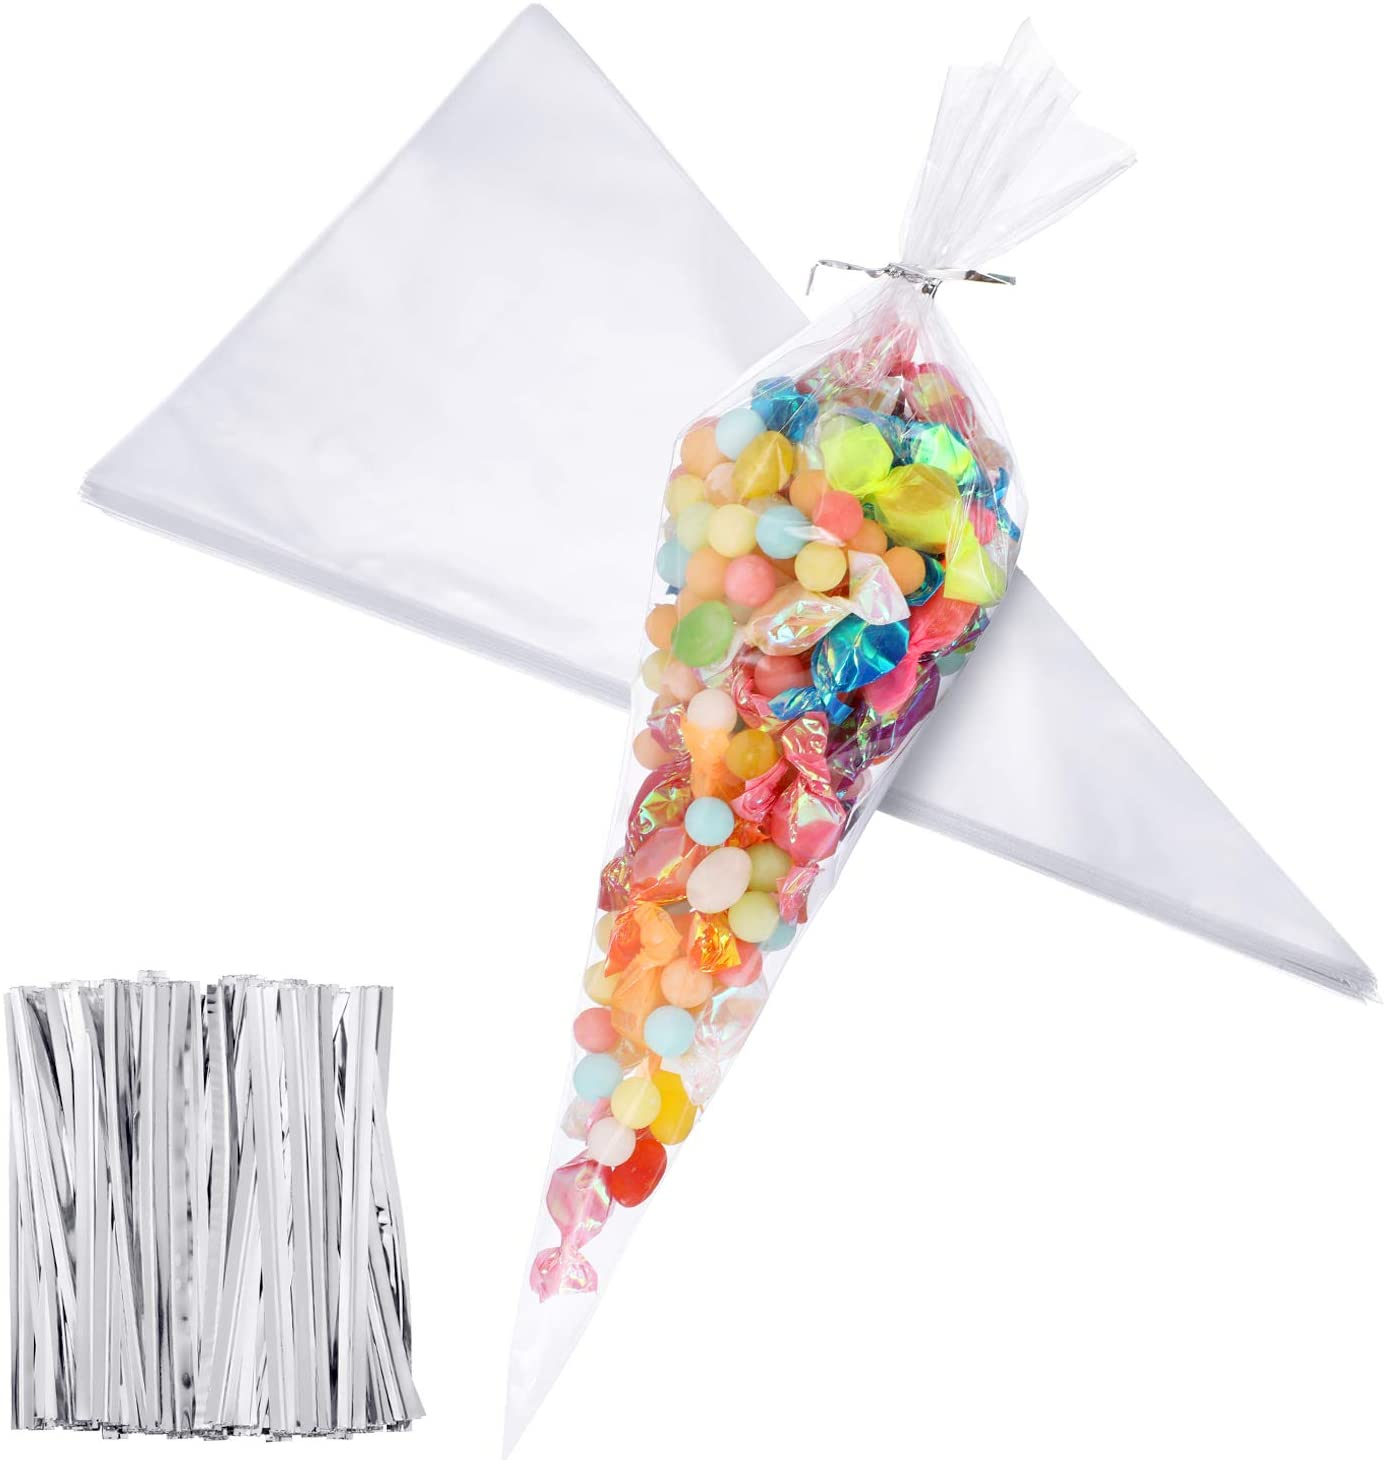 100 Pieces Easter Medium Transparent Cone Bags Cello Bags Sweet Clear Treat Bags with 100 Pieces Twist Ties, 11.8 by 6.3 Inch (Silver Twist Ties)